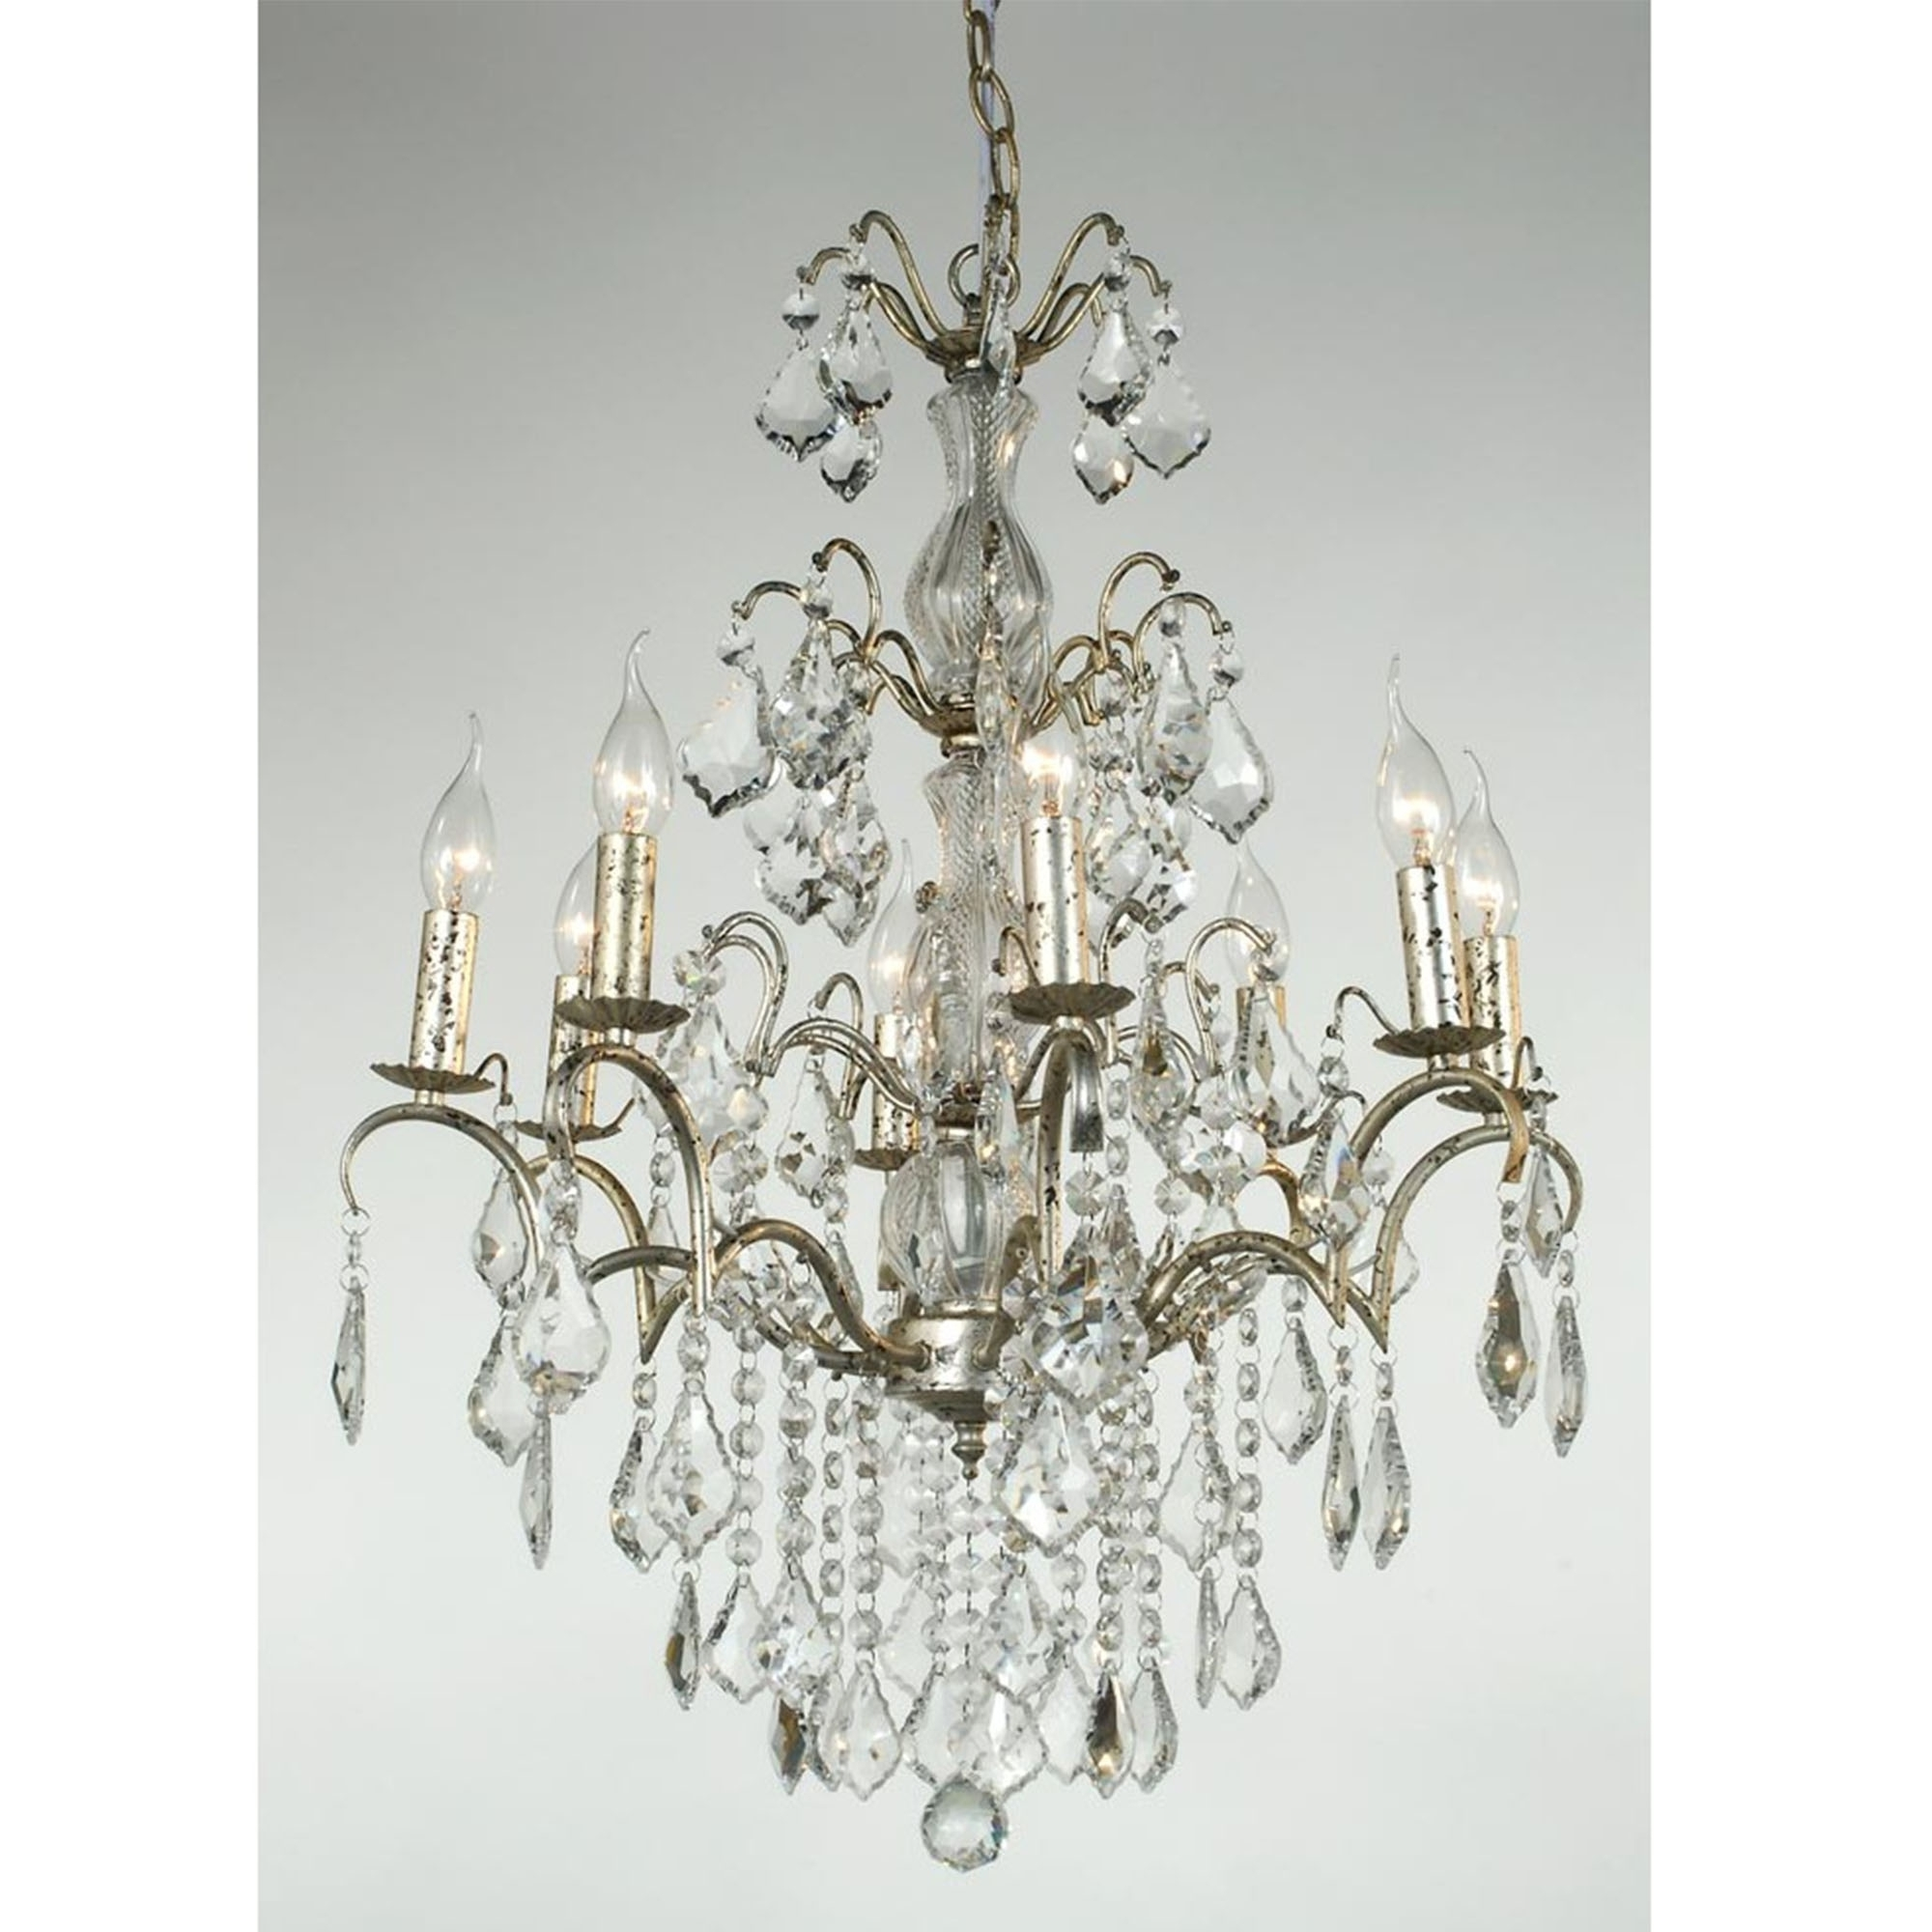 French Lighting Regarding French Style Chandelier (View 17 of 20)